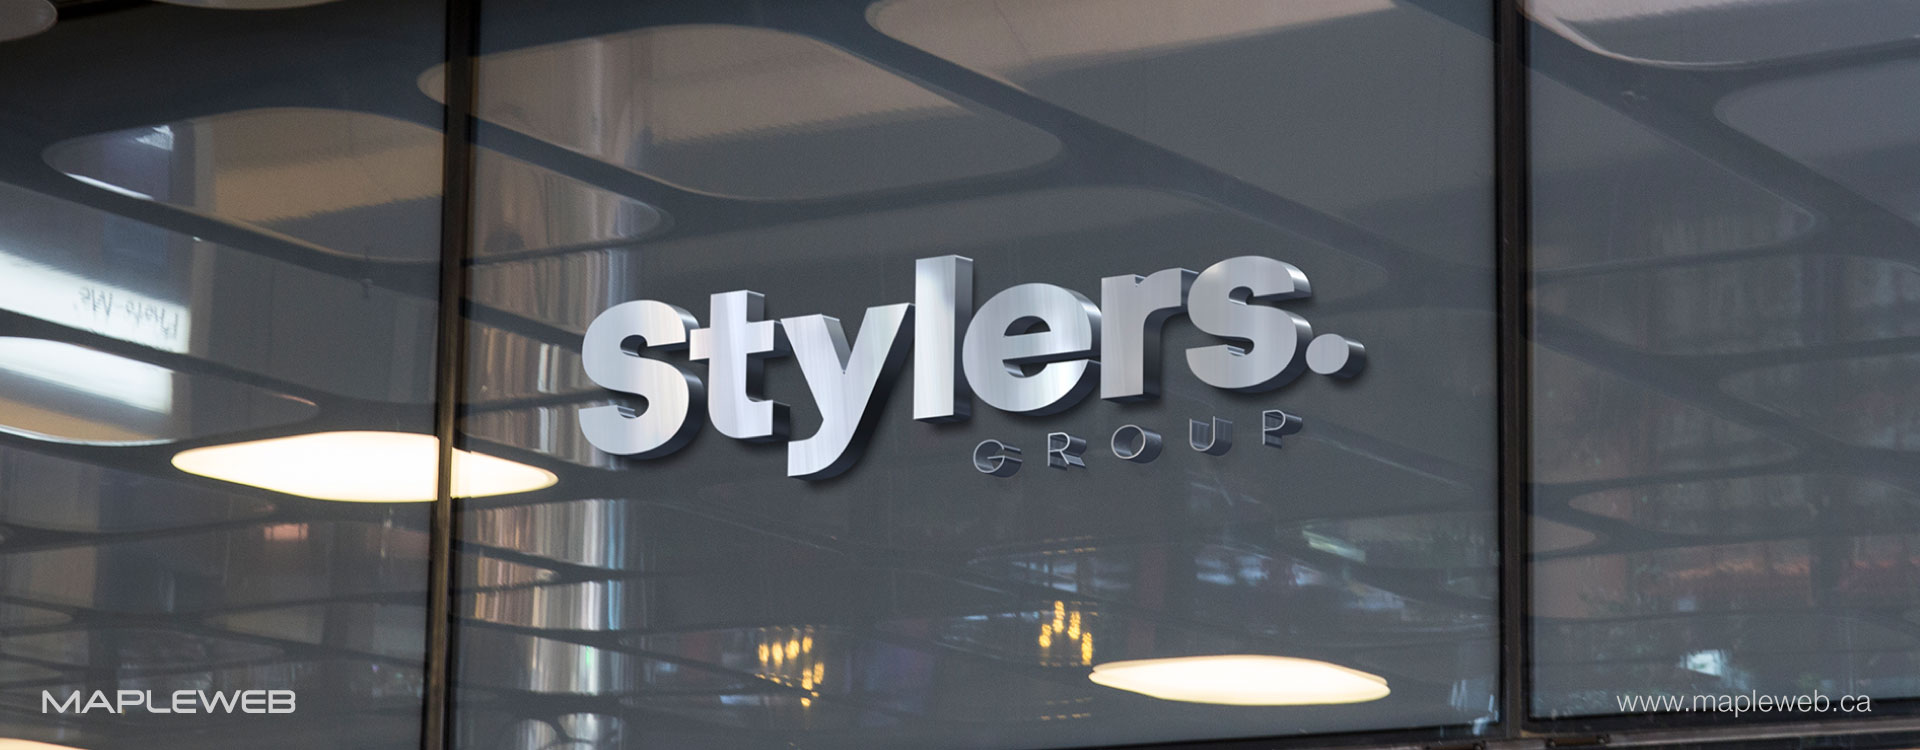 stylers-group-brand-logo-design-by-mapleweb-vancouver-canada-3D-sign-mock